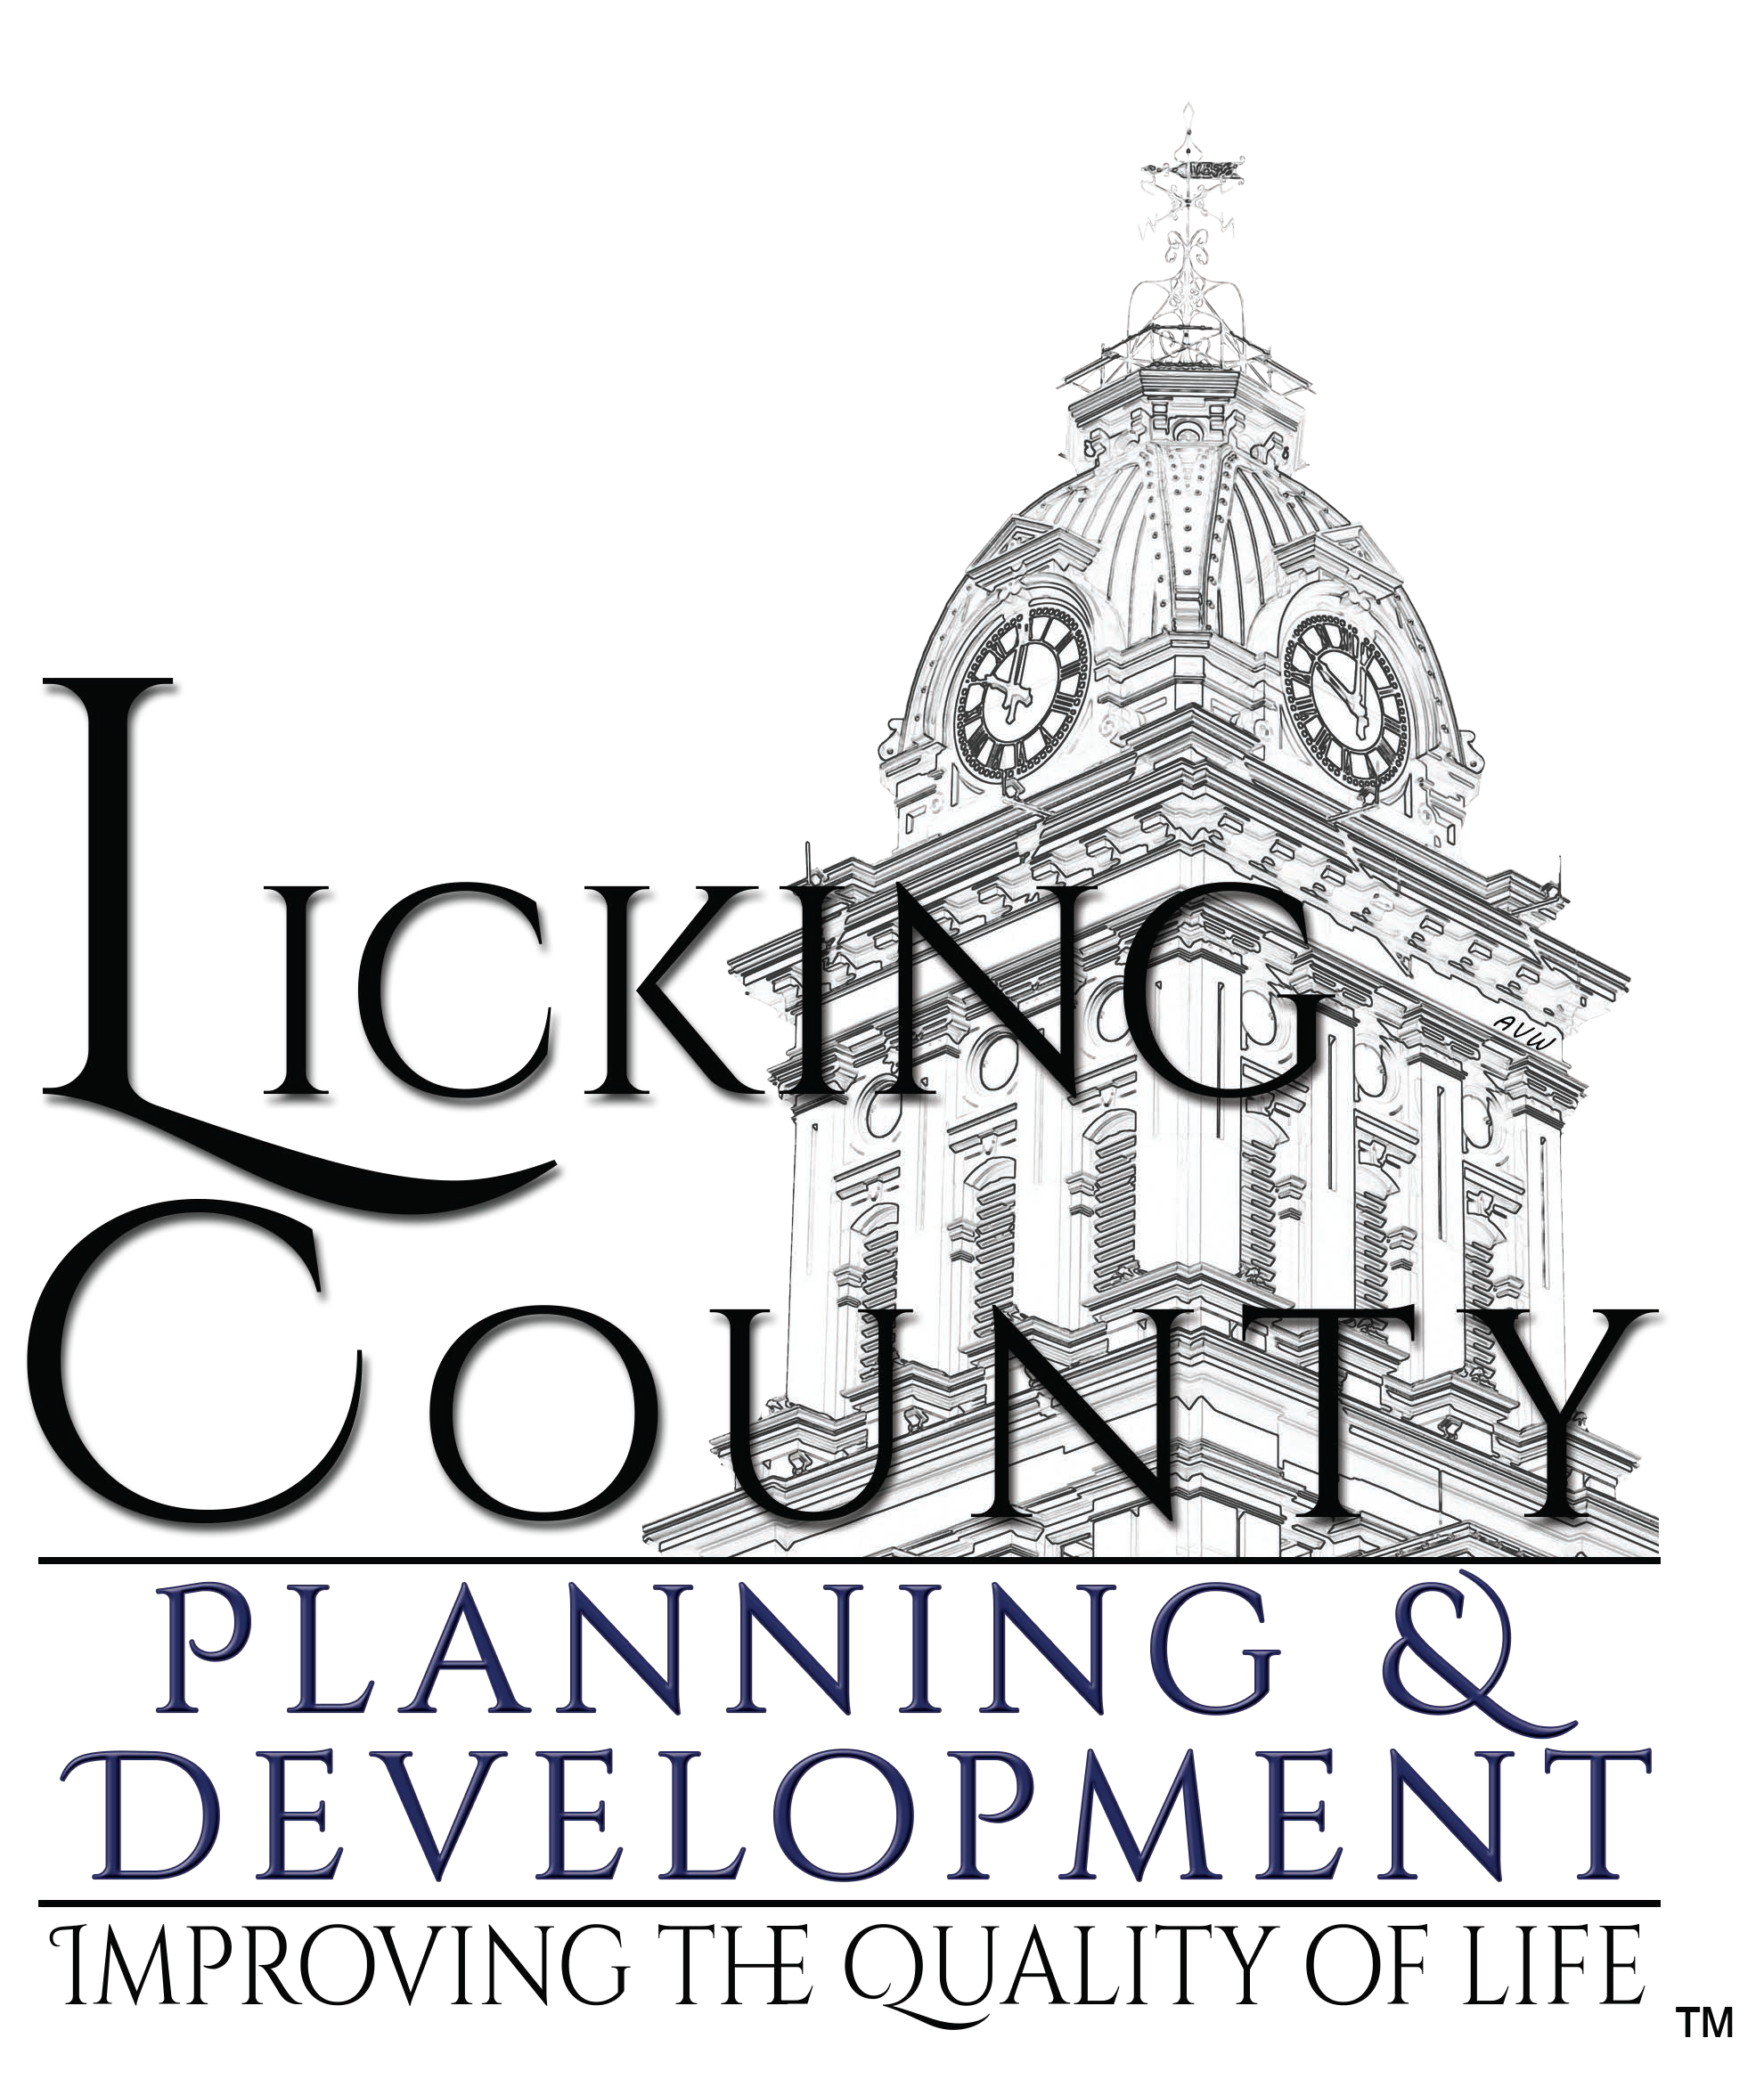 Planner clipart city planning office. Licking county development hours